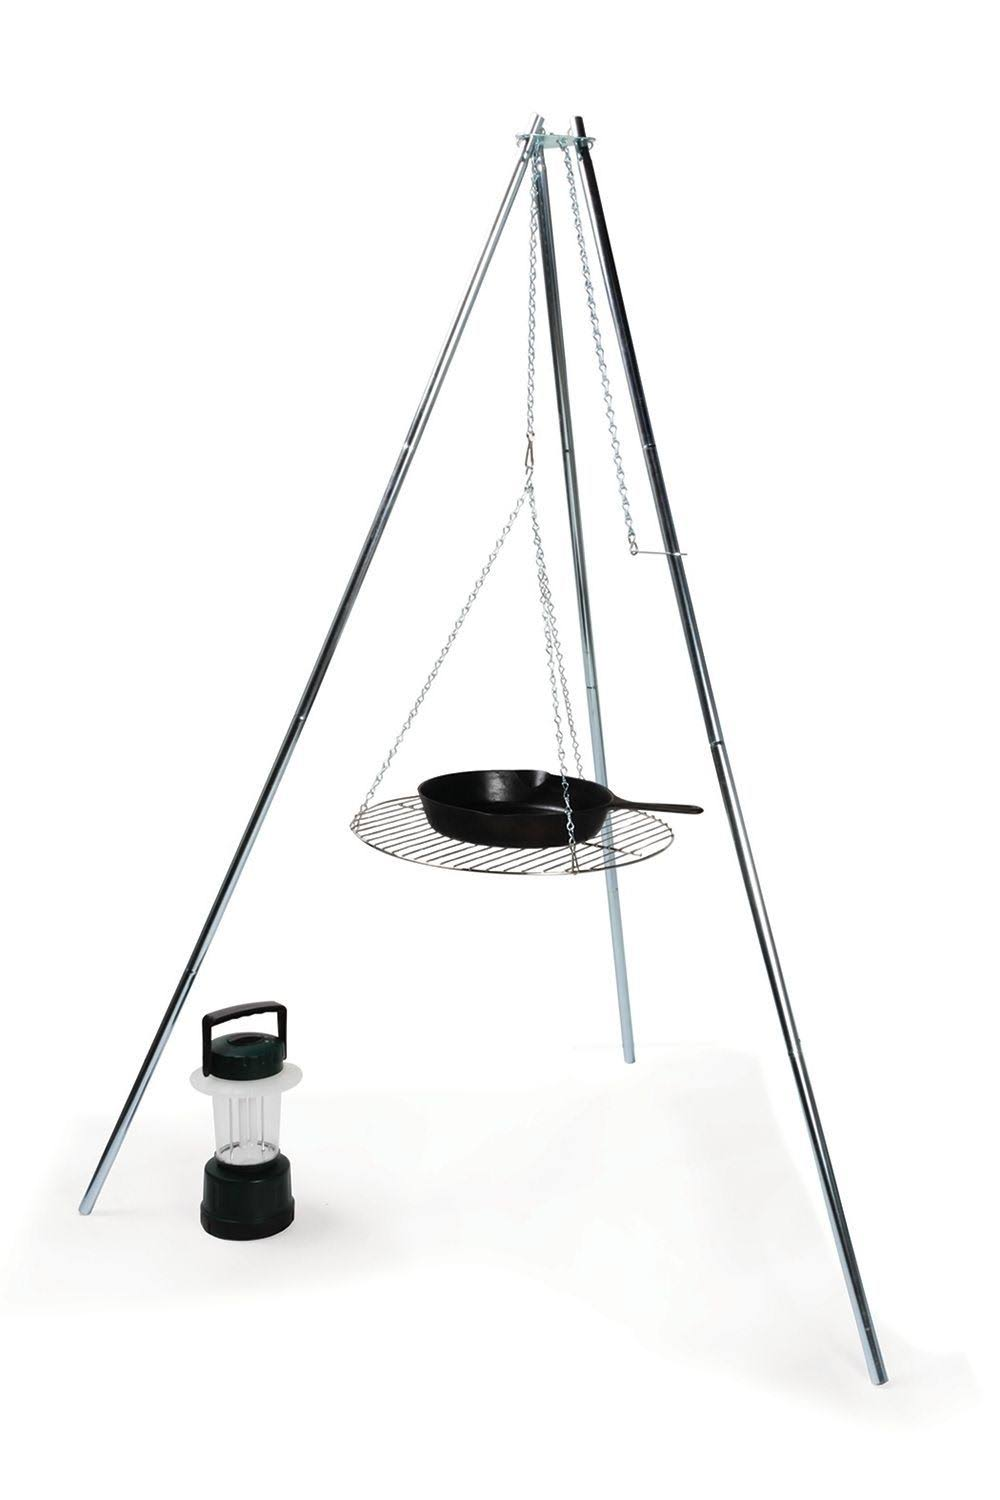 Camco 51079 Tripod Grill and Lantern Holder - 43cm